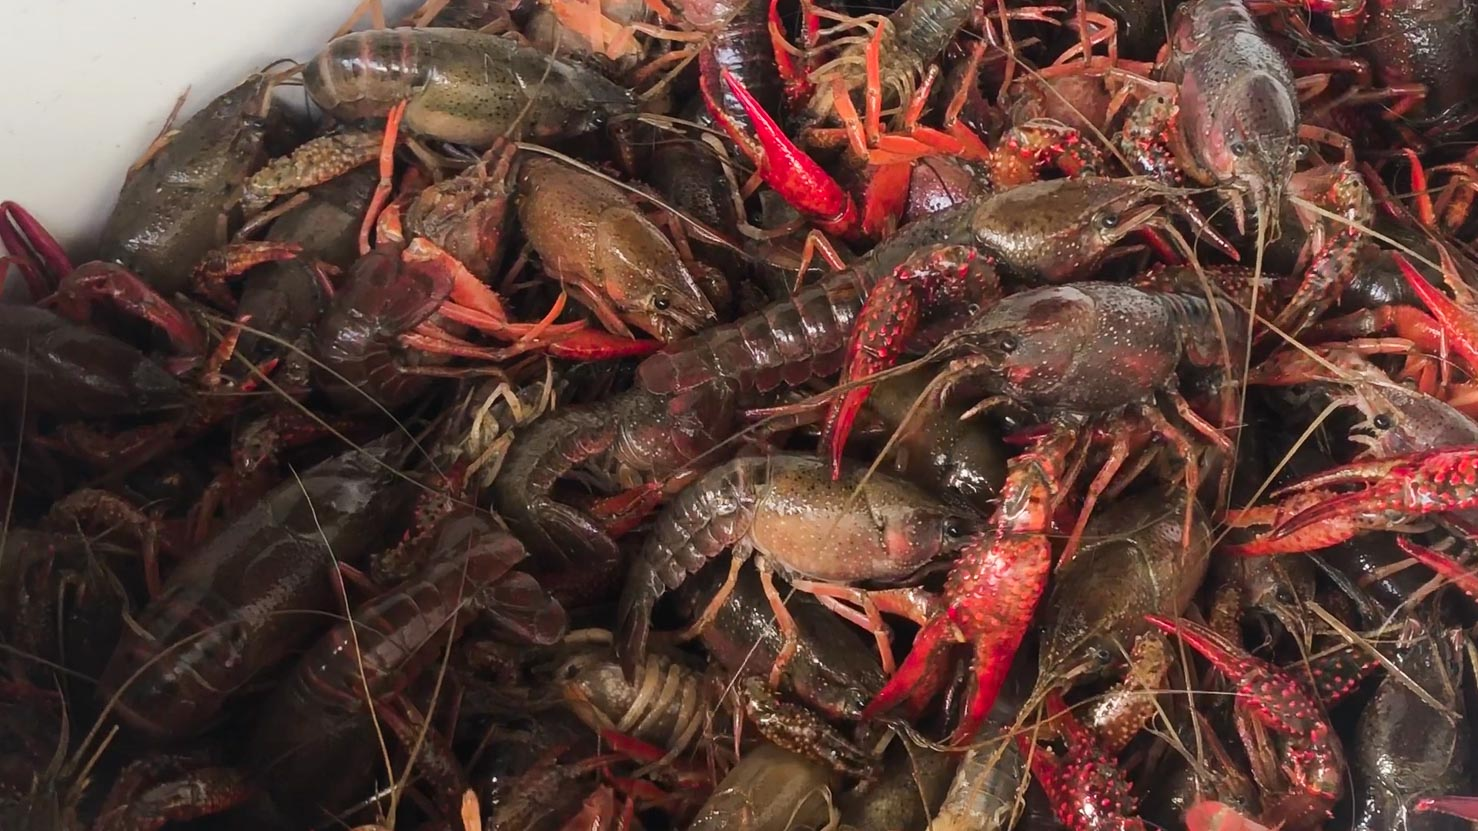 Live crawfish - close up